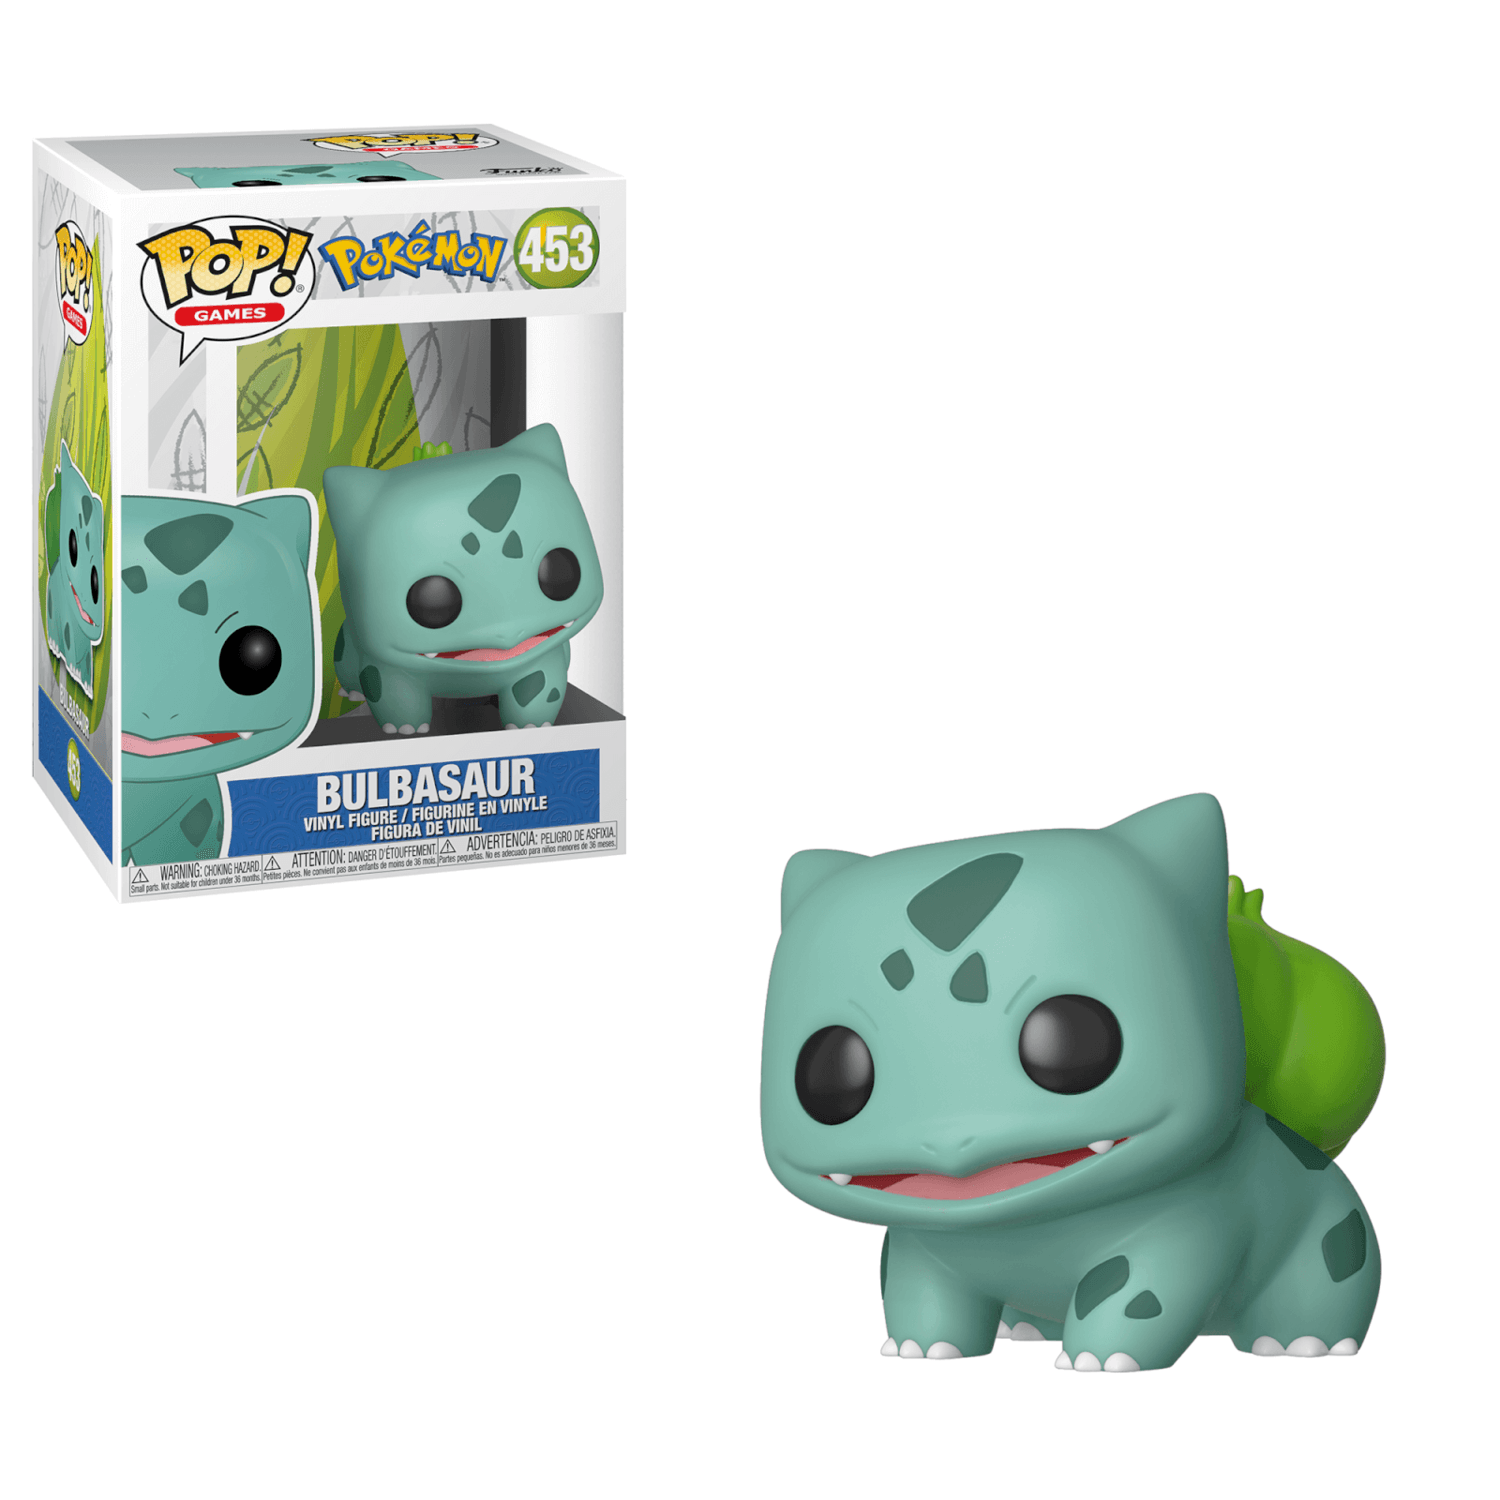 Bulbassauro - Funko Pop! - Pokémon